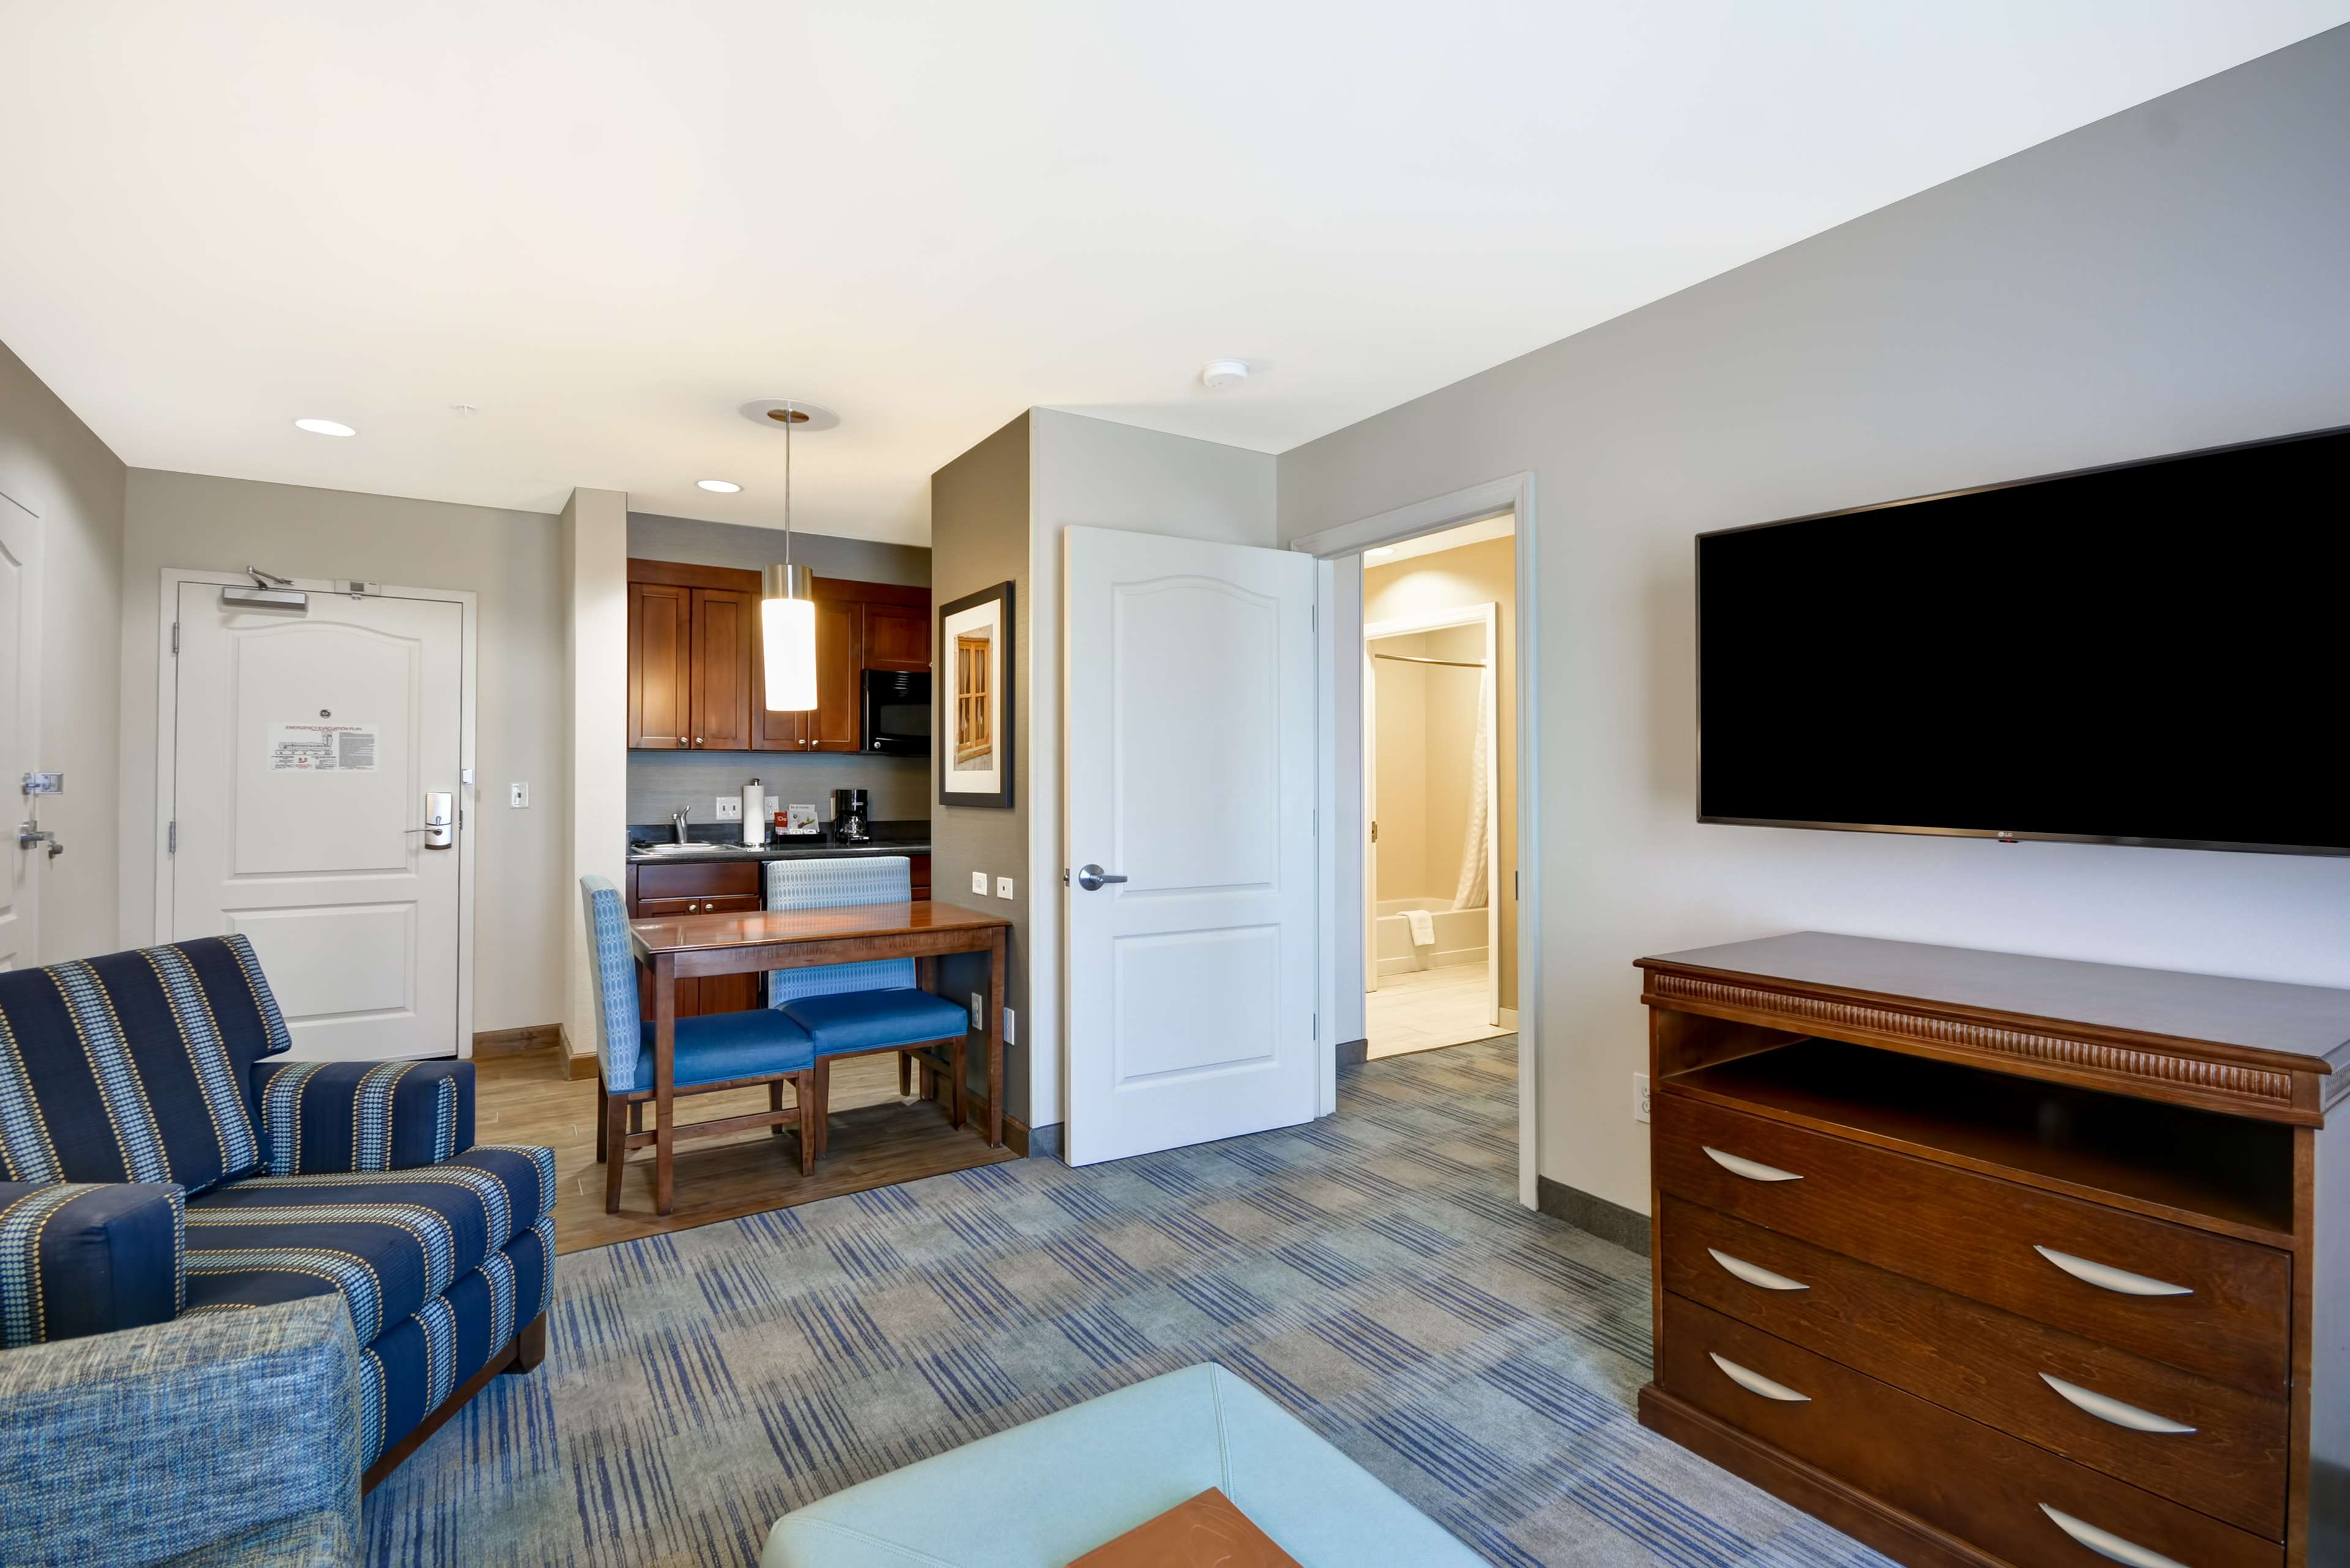 Homewood Suites by Hilton Wilmington/Mayfaire, NC image 27